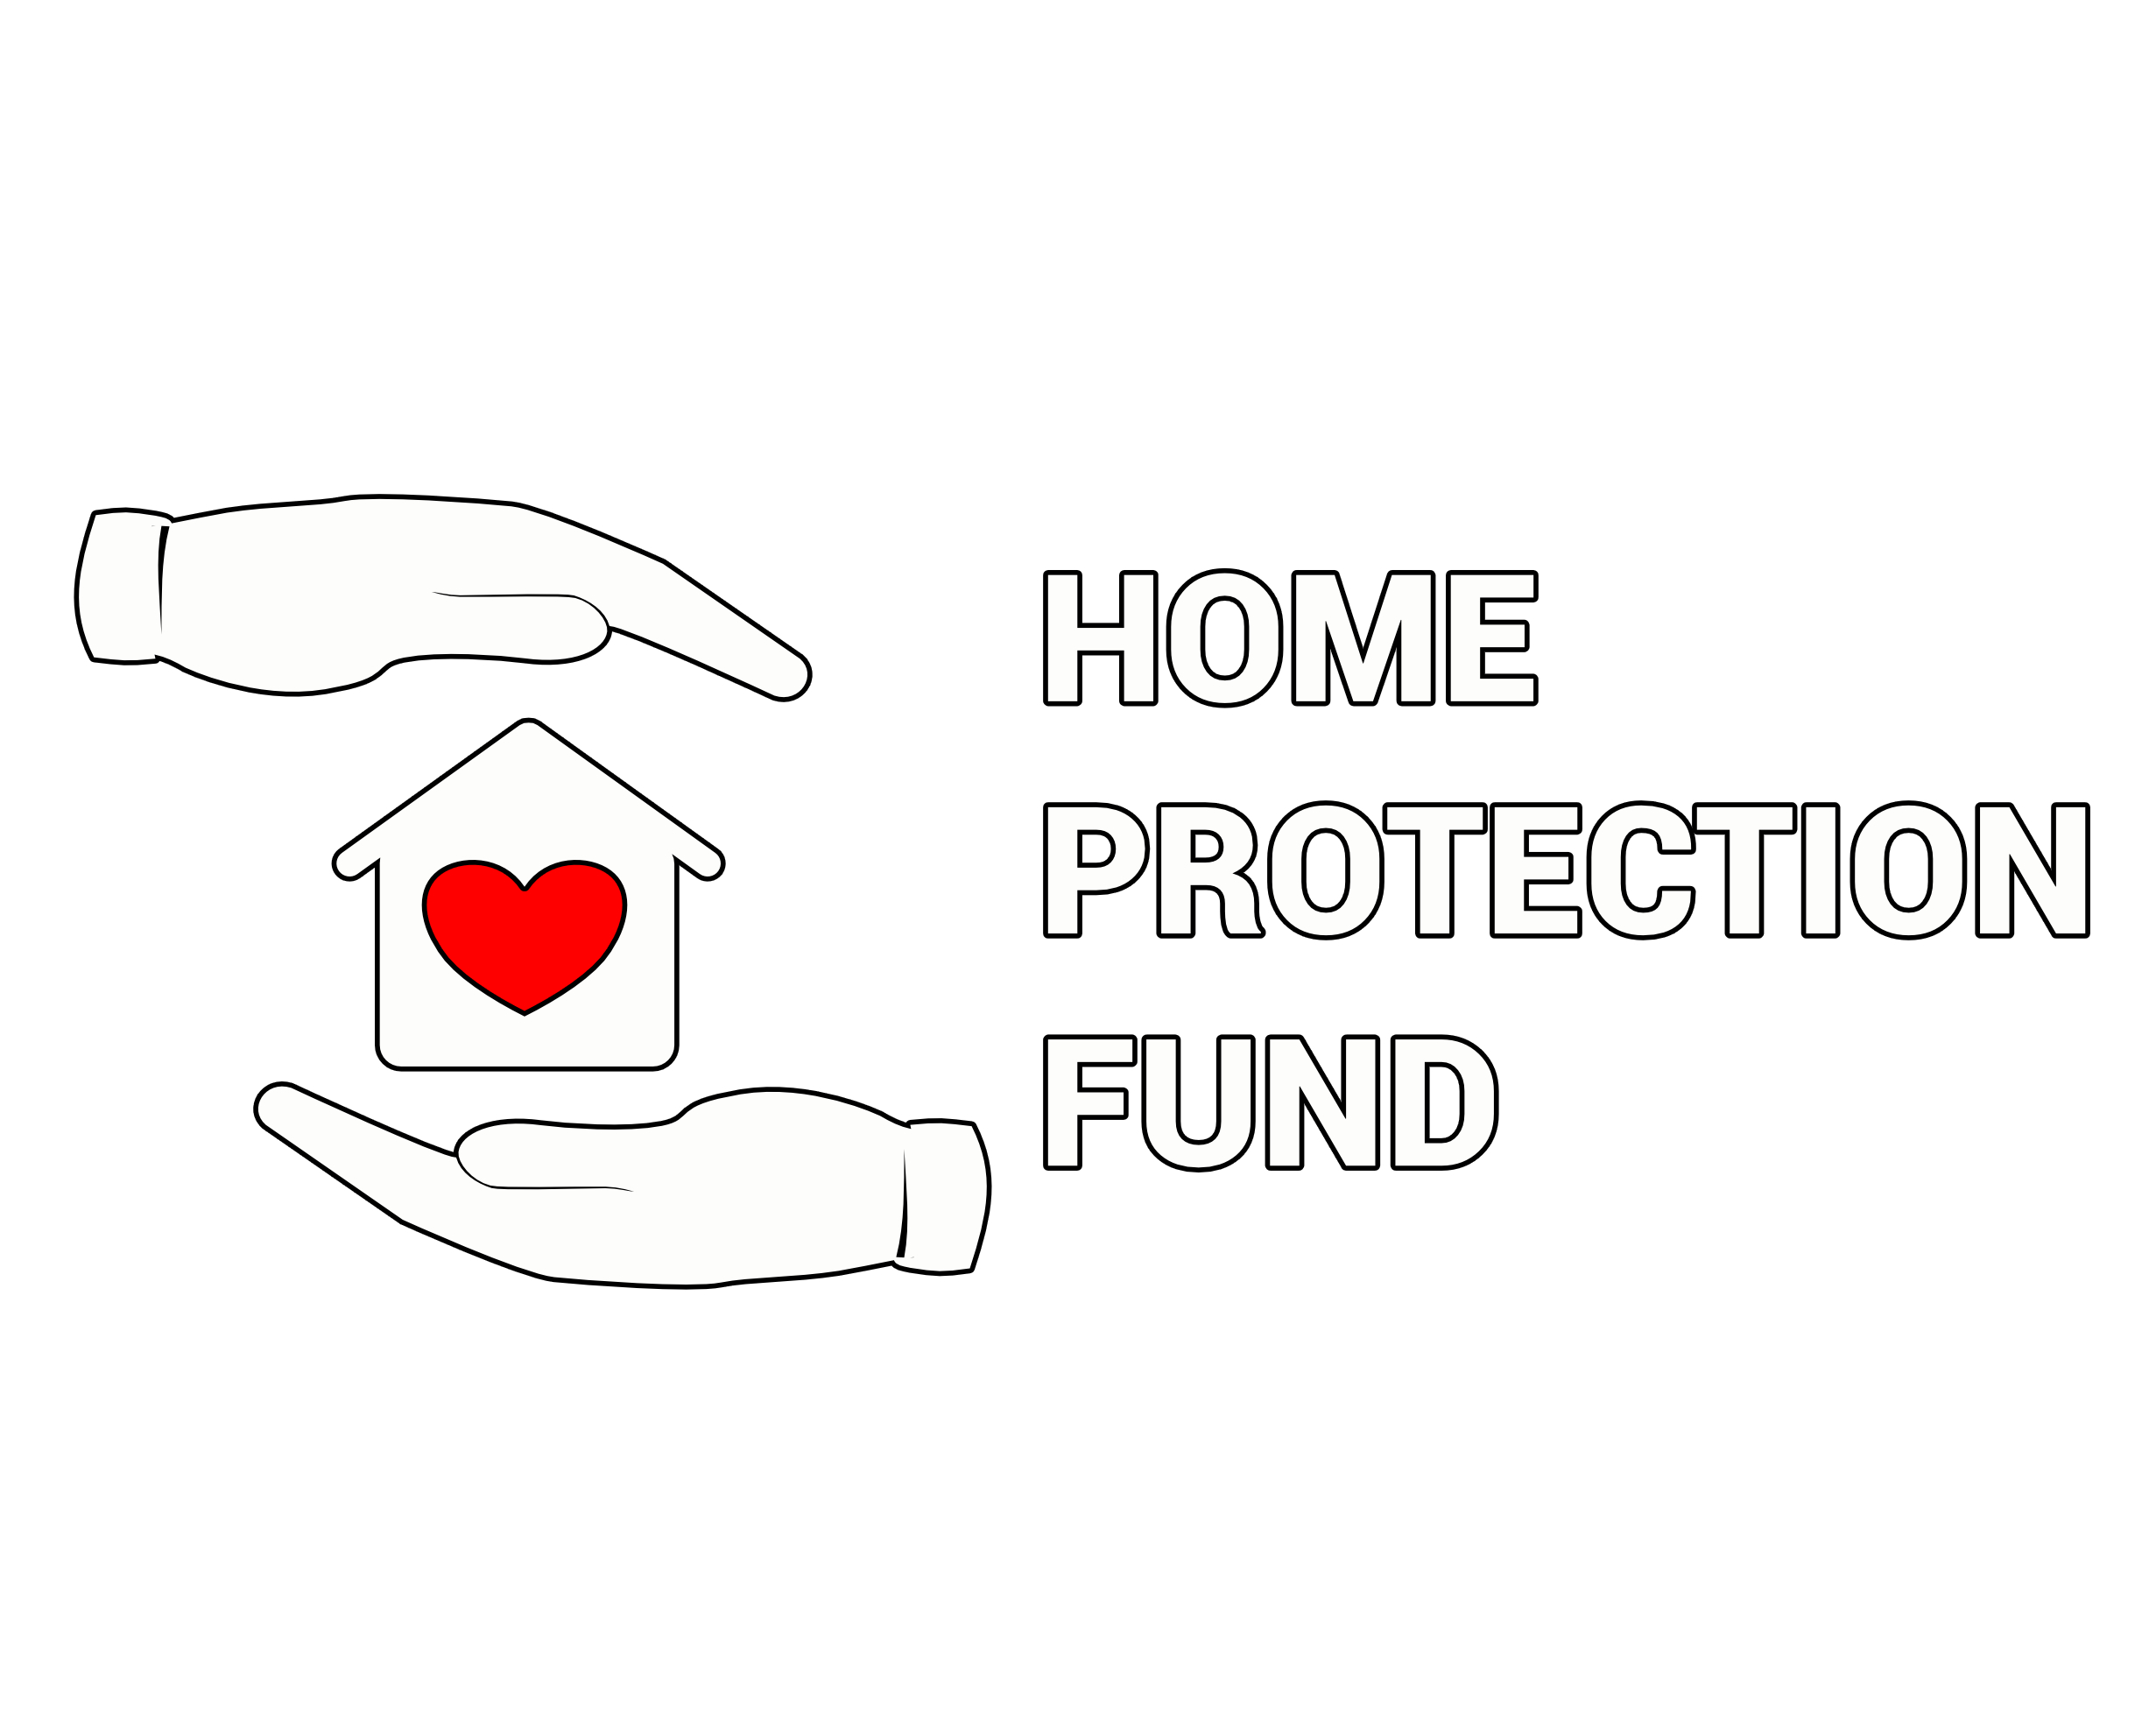 Home Protection Fund